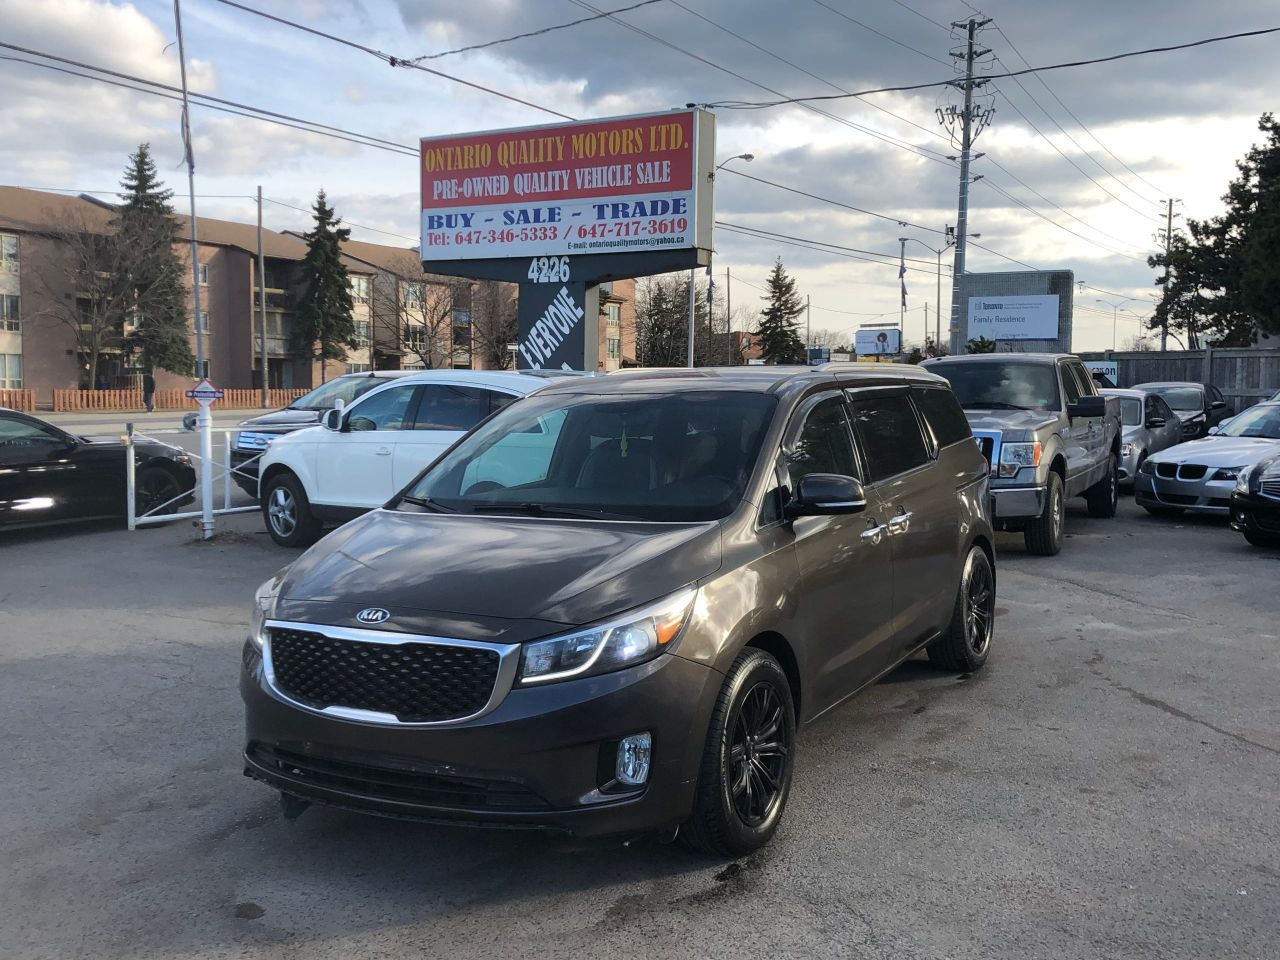 Ontario Quality Motors >> 2015 Kia Sedona Ontario Quality Motors Ltd